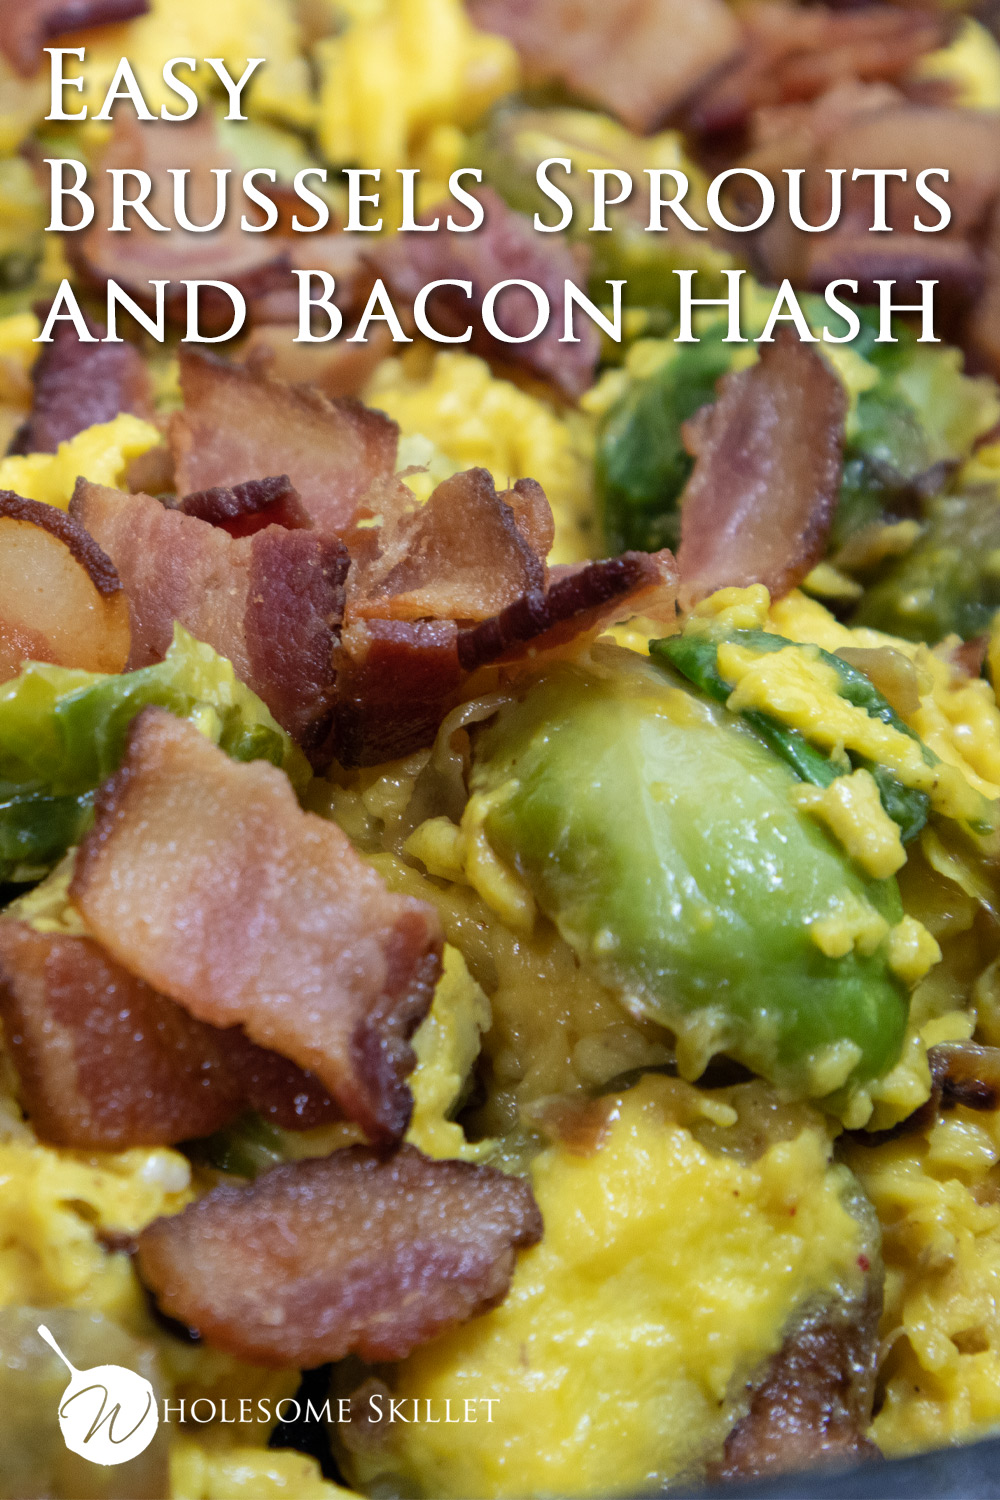 This simple Brussels sprouts and bacon dish is packed with flavor and perfect for an easy supper, or weekend brunch.